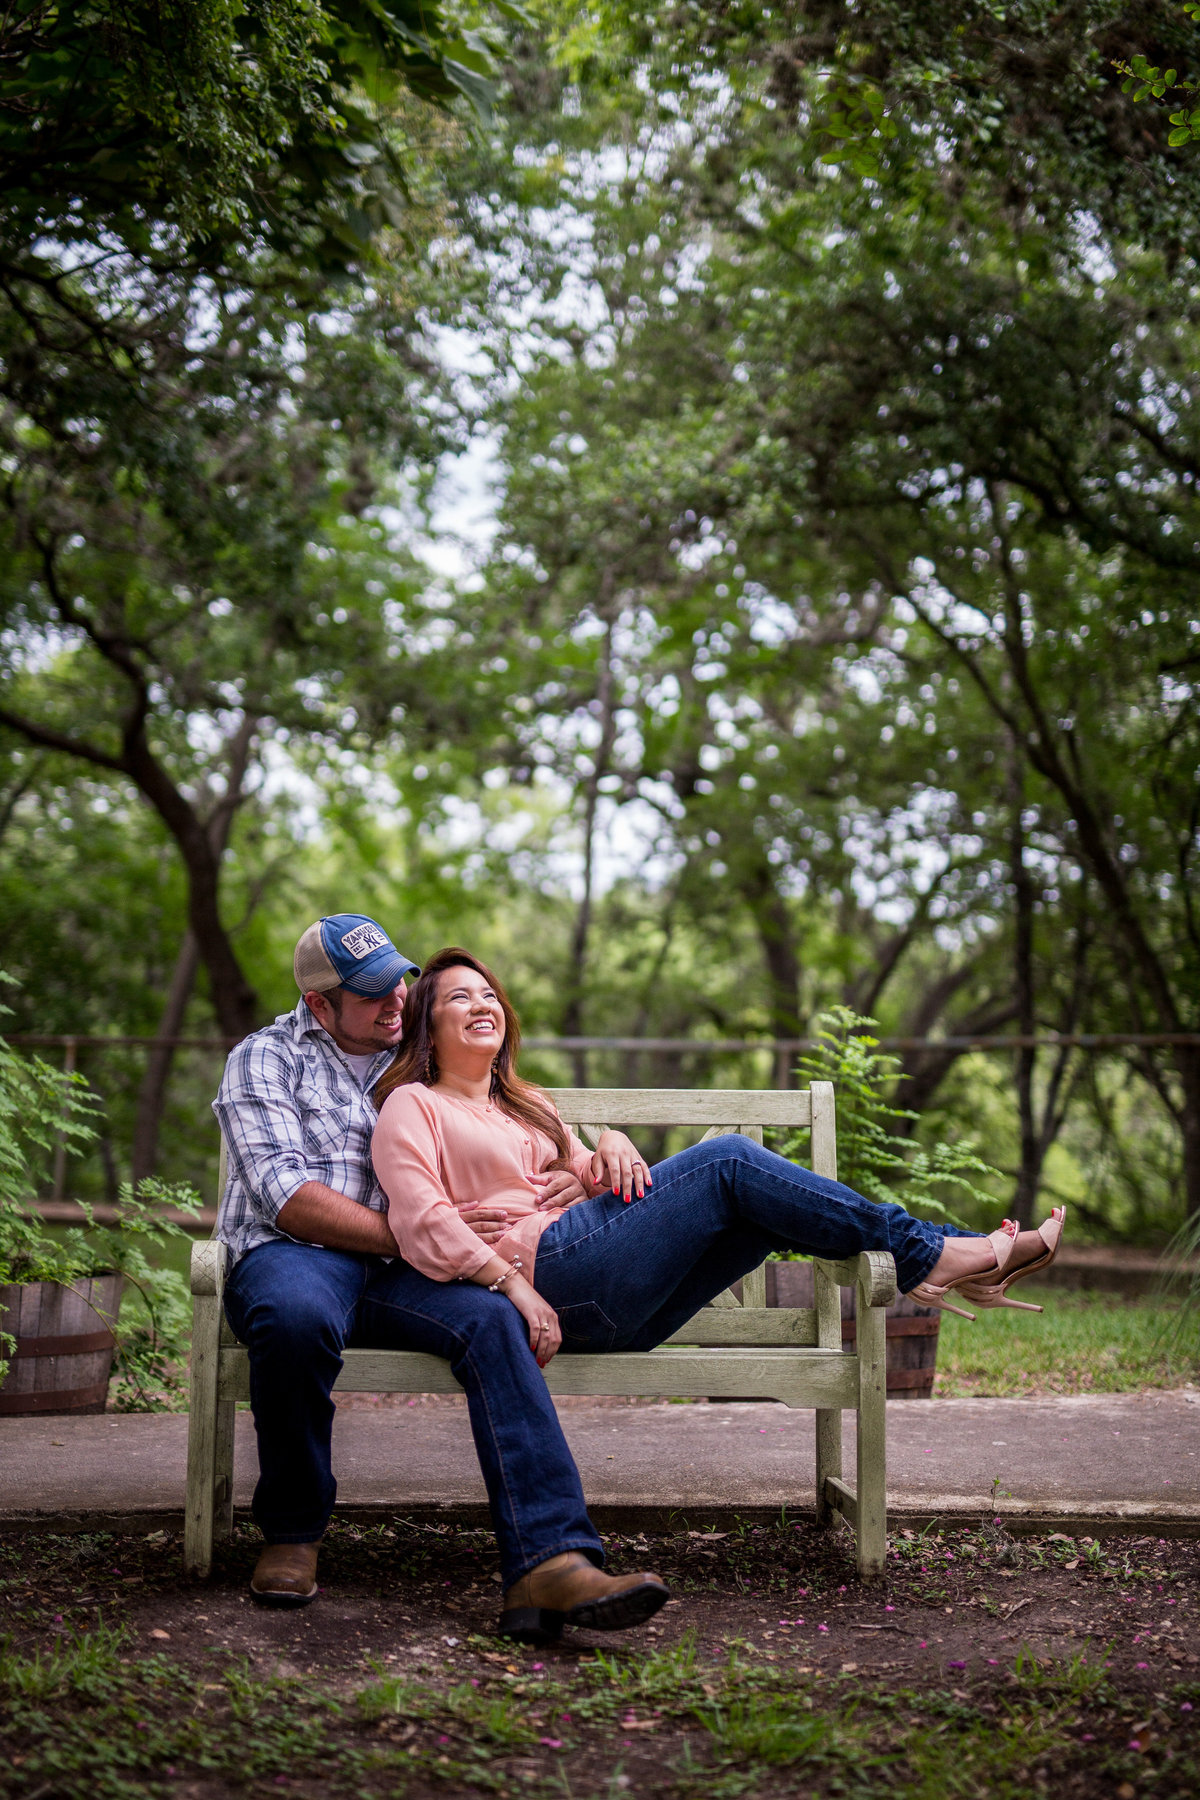 A man and woman in love and laughing while sitting on a bench in Gruene, Texas while on their engagement photo shoot.